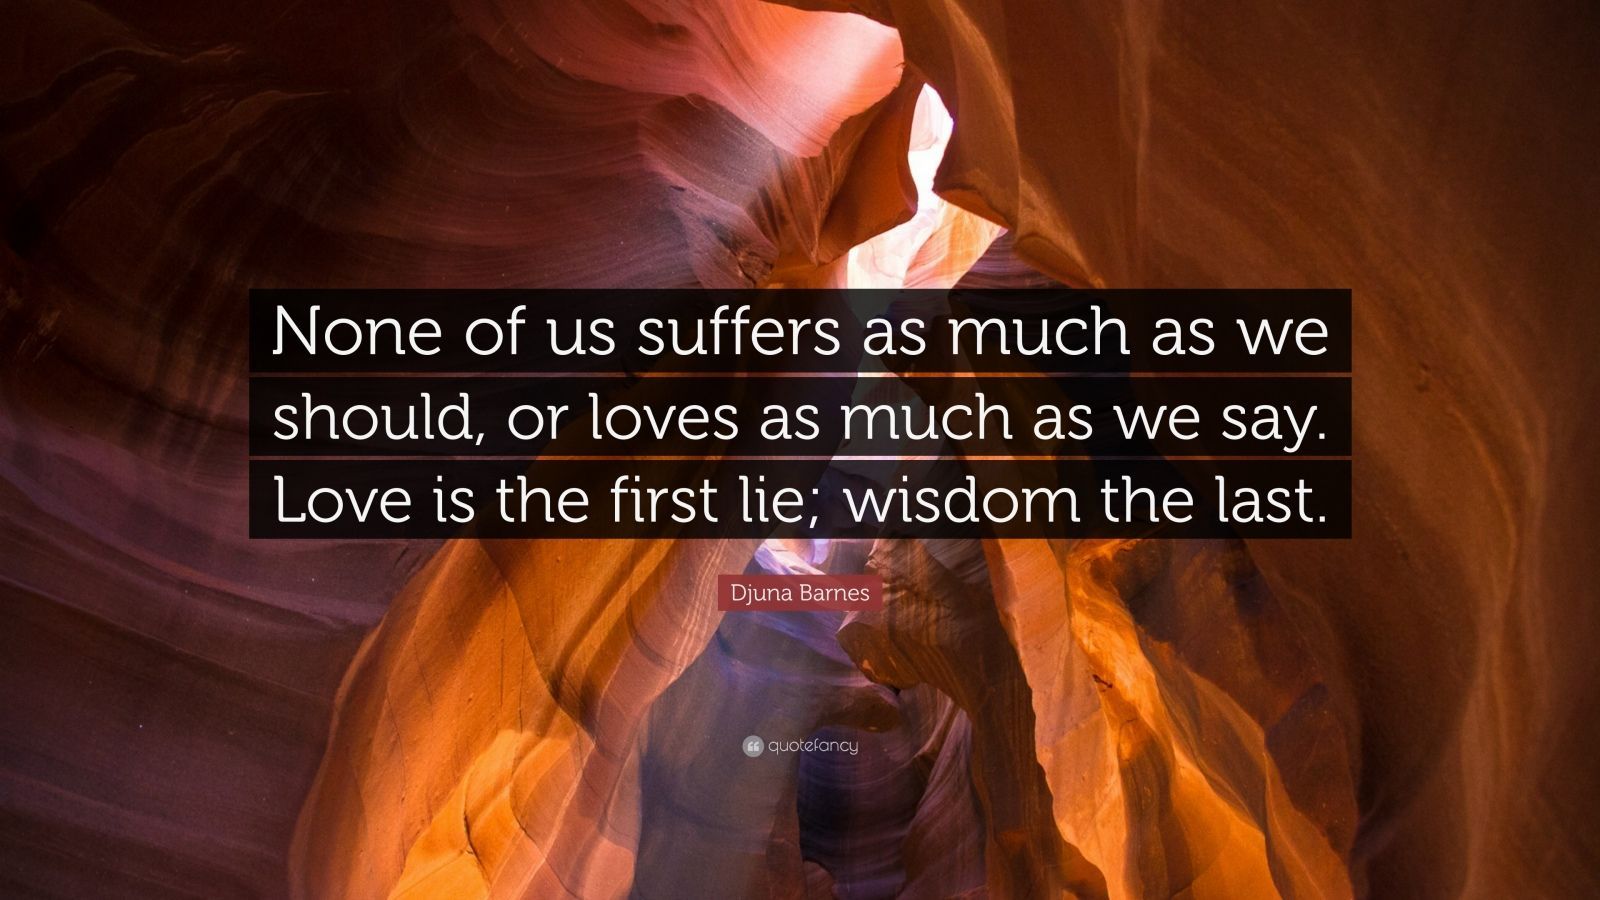 """Djuna Barnes Quote: """"None of us suffers as much as we should, or loves as much as we say. Love is the first lie; wisdom the last."""""""